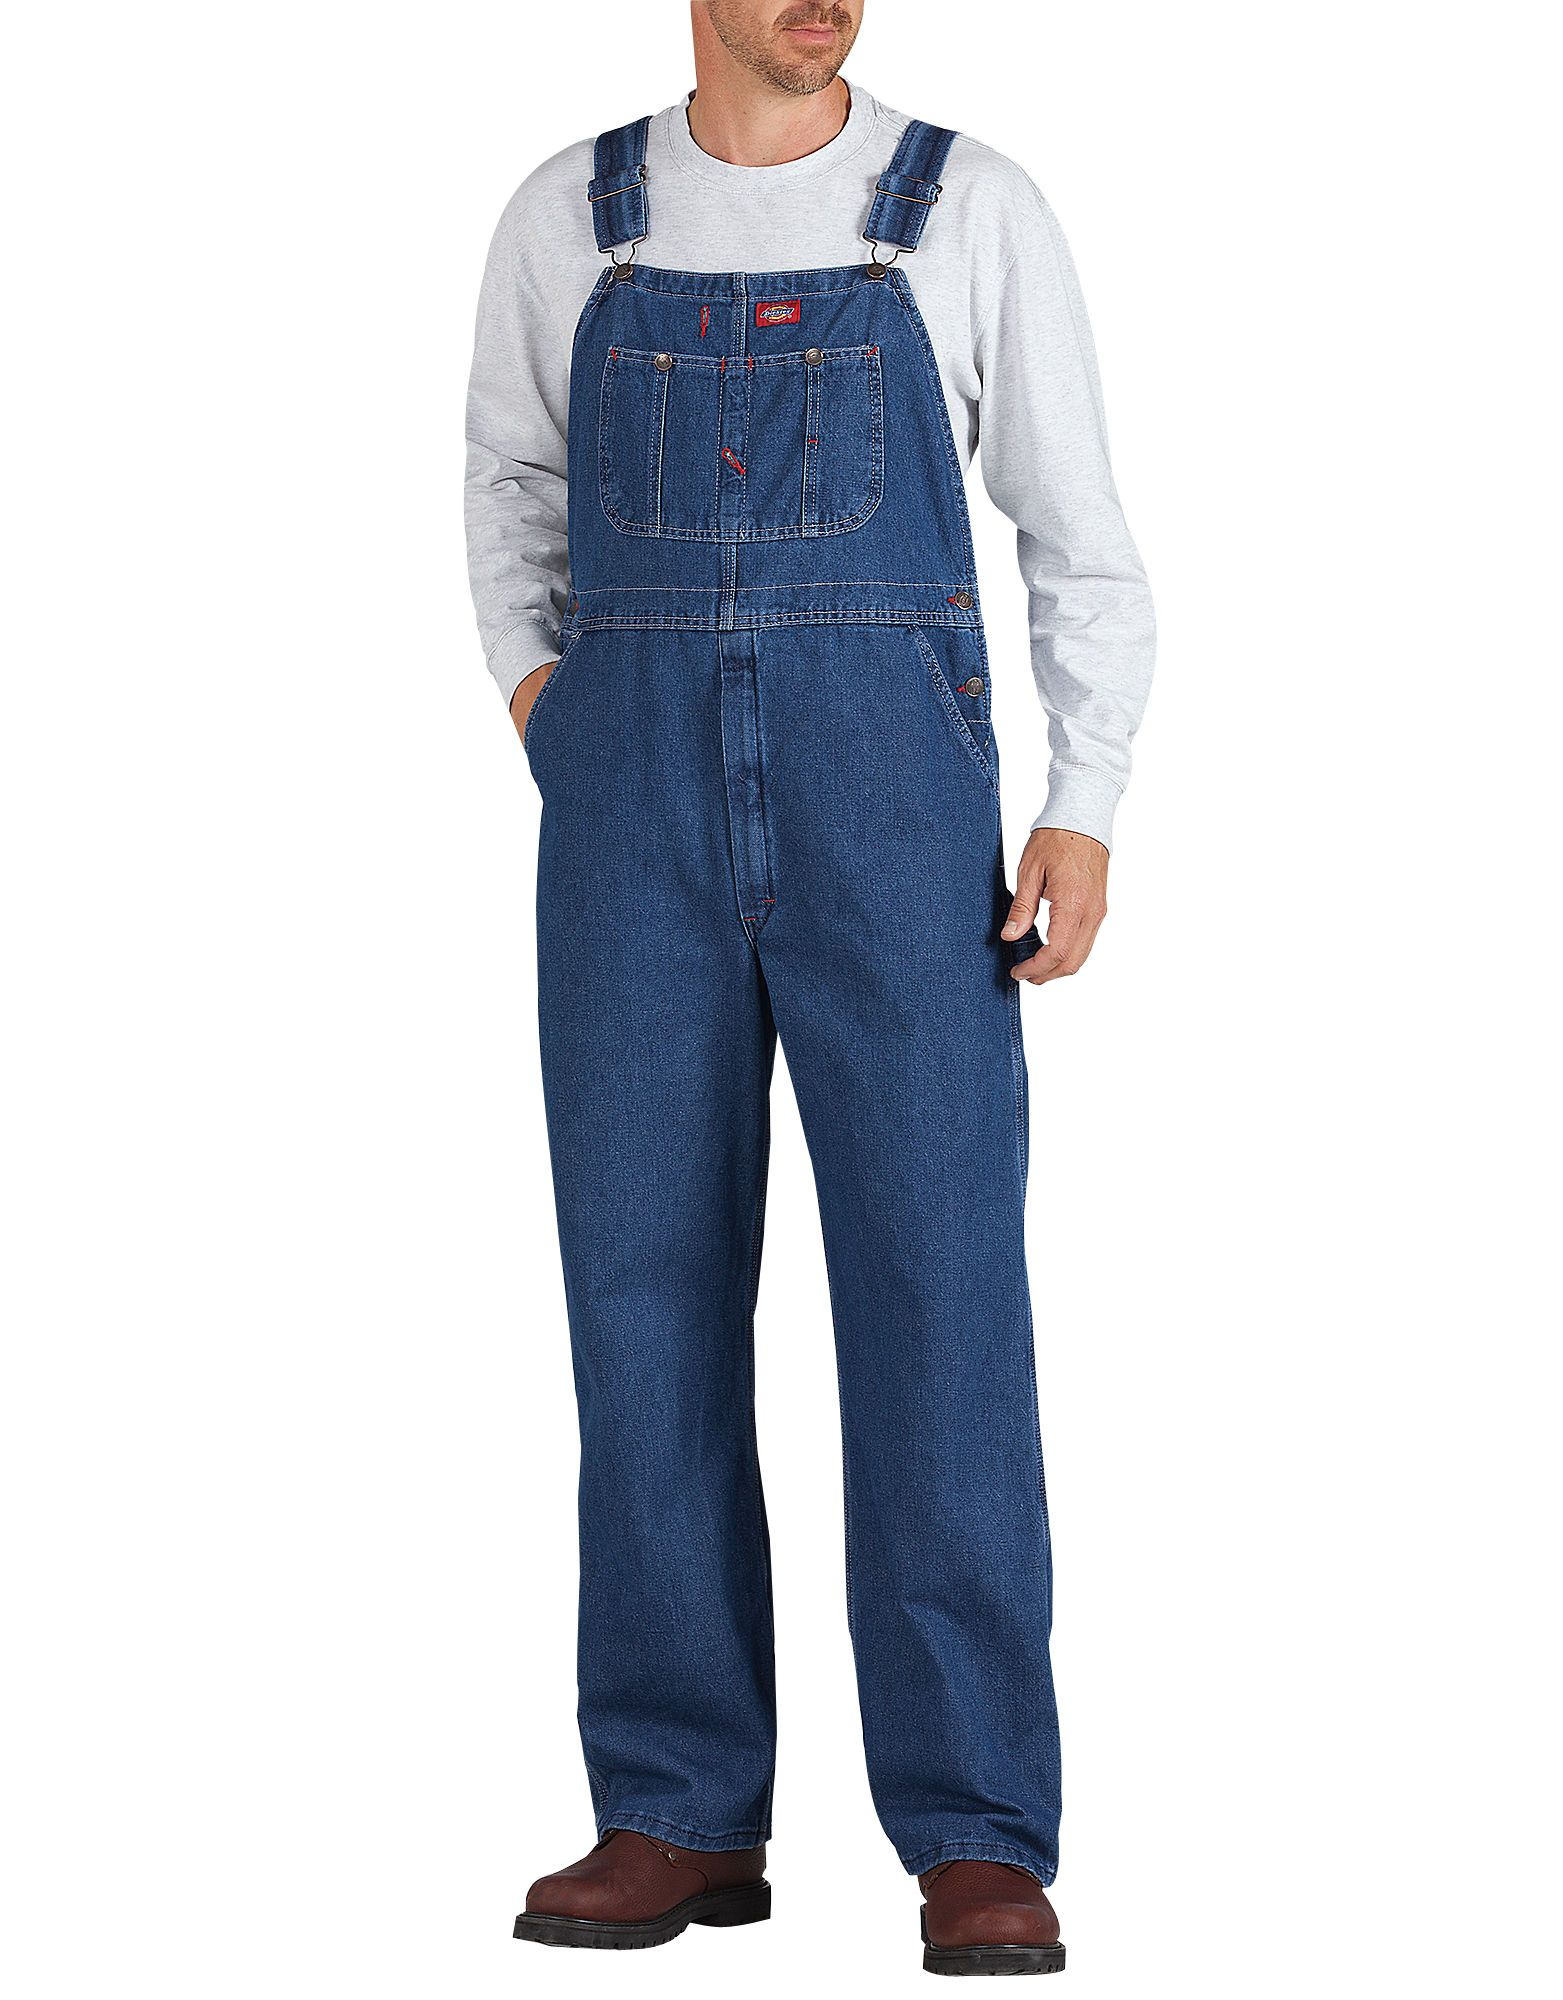 mens bib overalls coveralls dickies bib overalls on best insulated coveralls for men id=29513